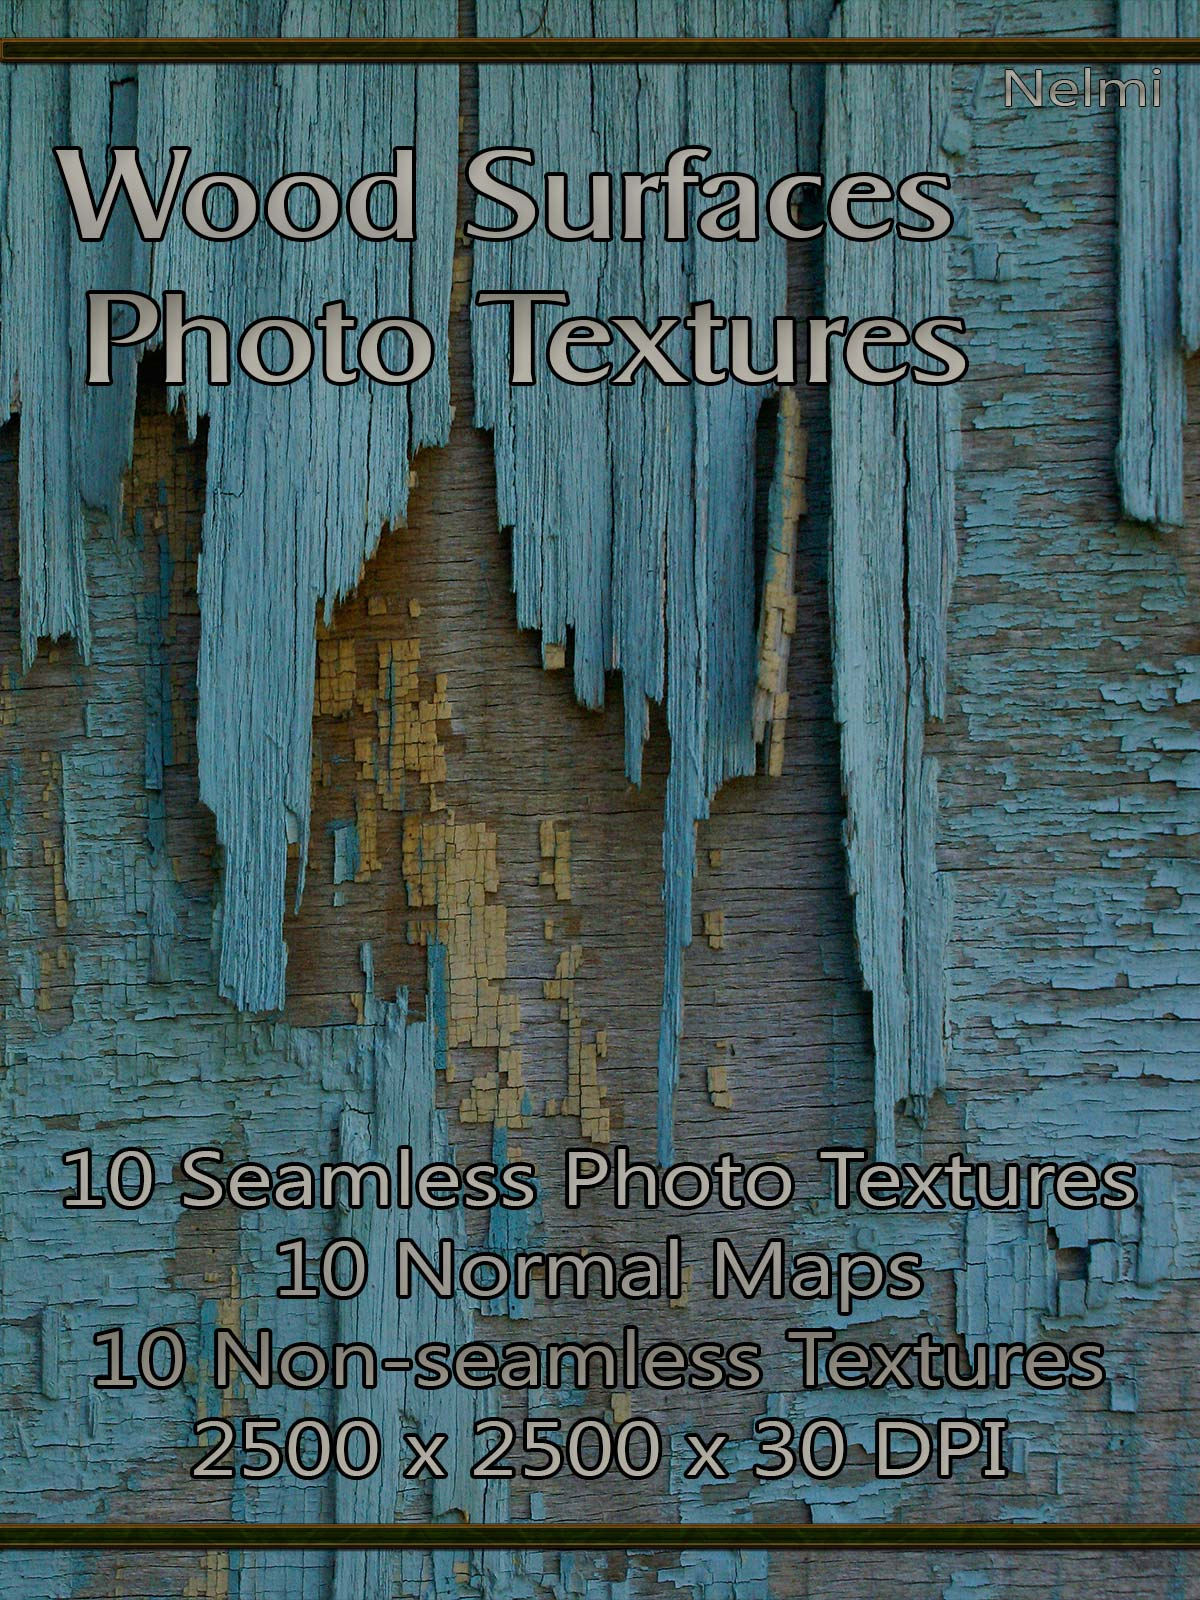 Merchant Resource: 10 Wood Surfaces Photo Textures with Normal Maps